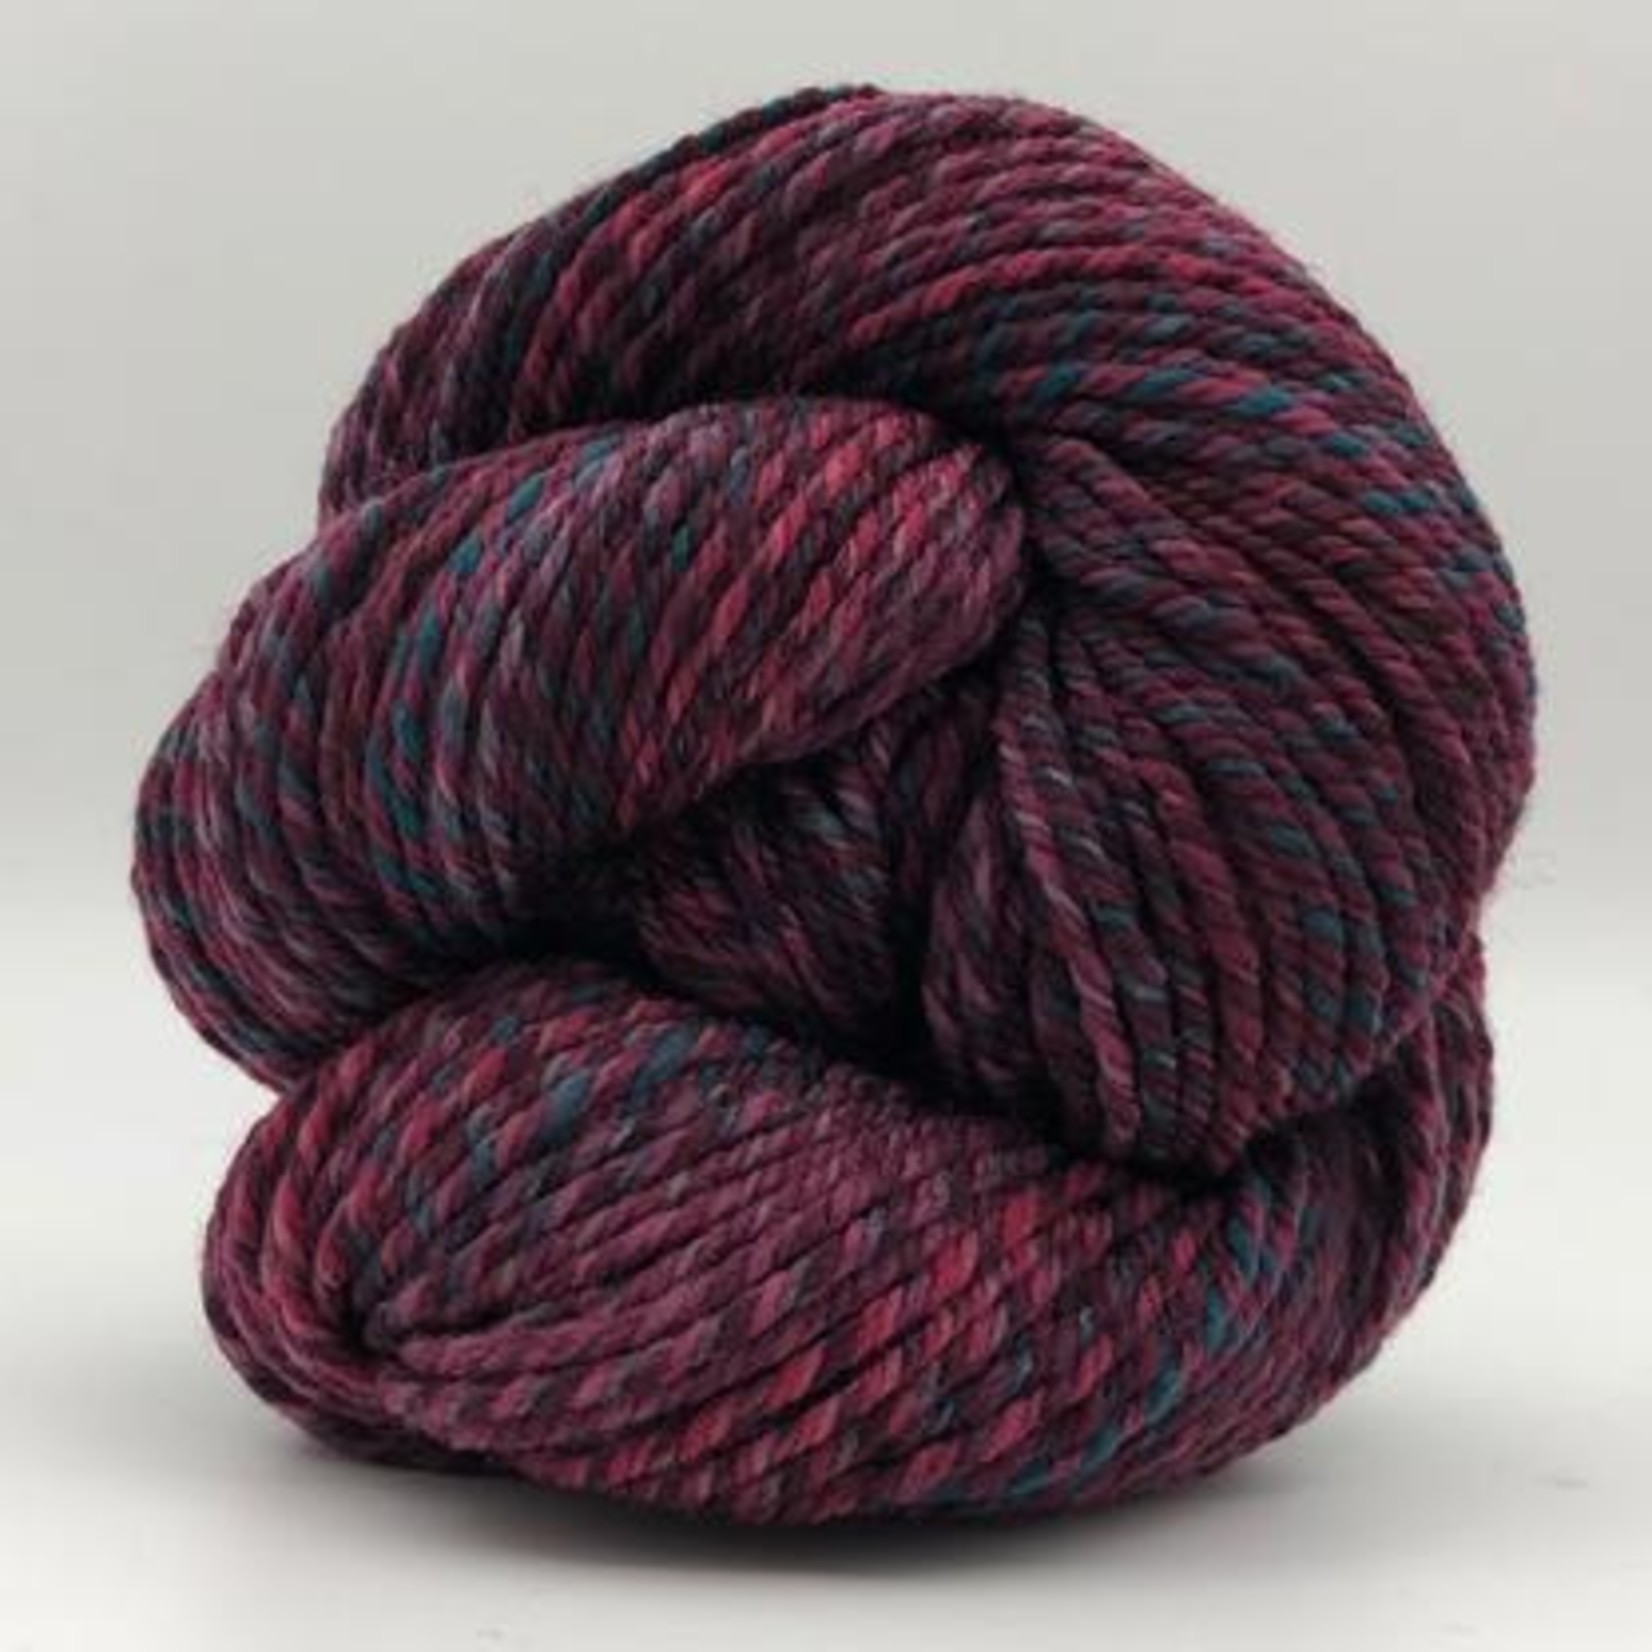 Spincycle Yarn Dyed in the Wool, Nostalgia